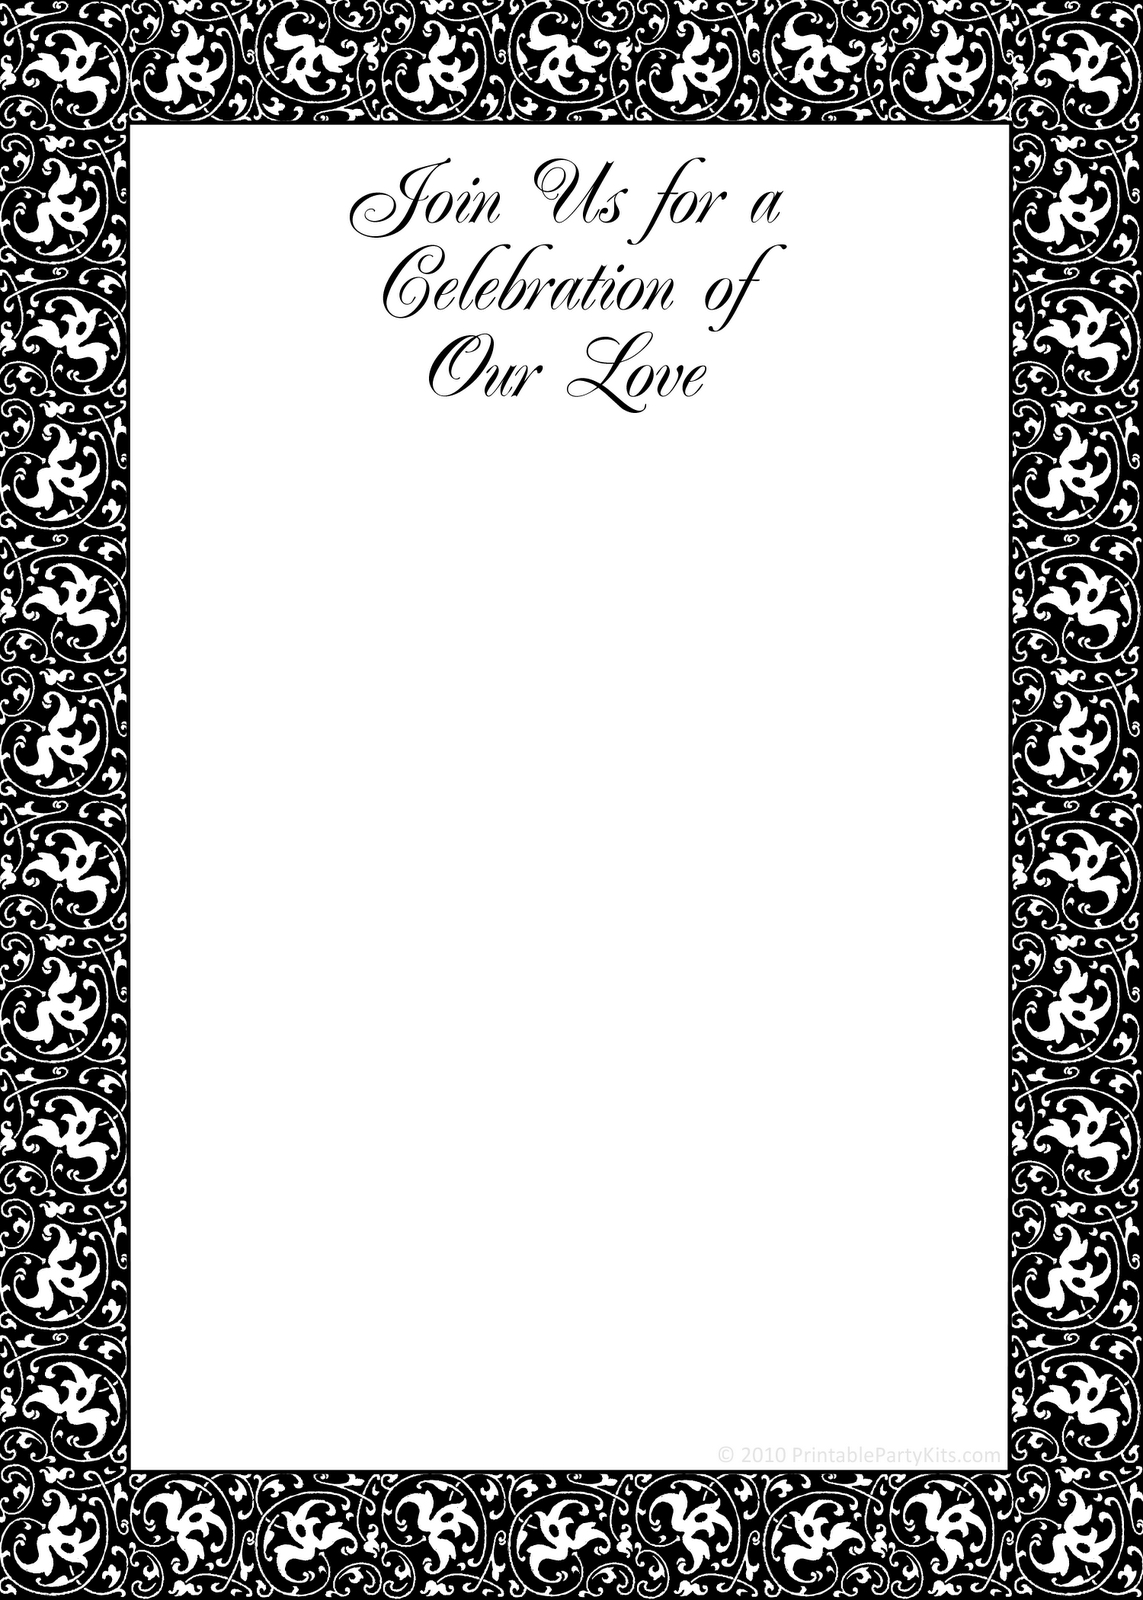 Free Party Invitation Elegant Template Halloween Printable - Halloween Invitations Free Printable Black And White